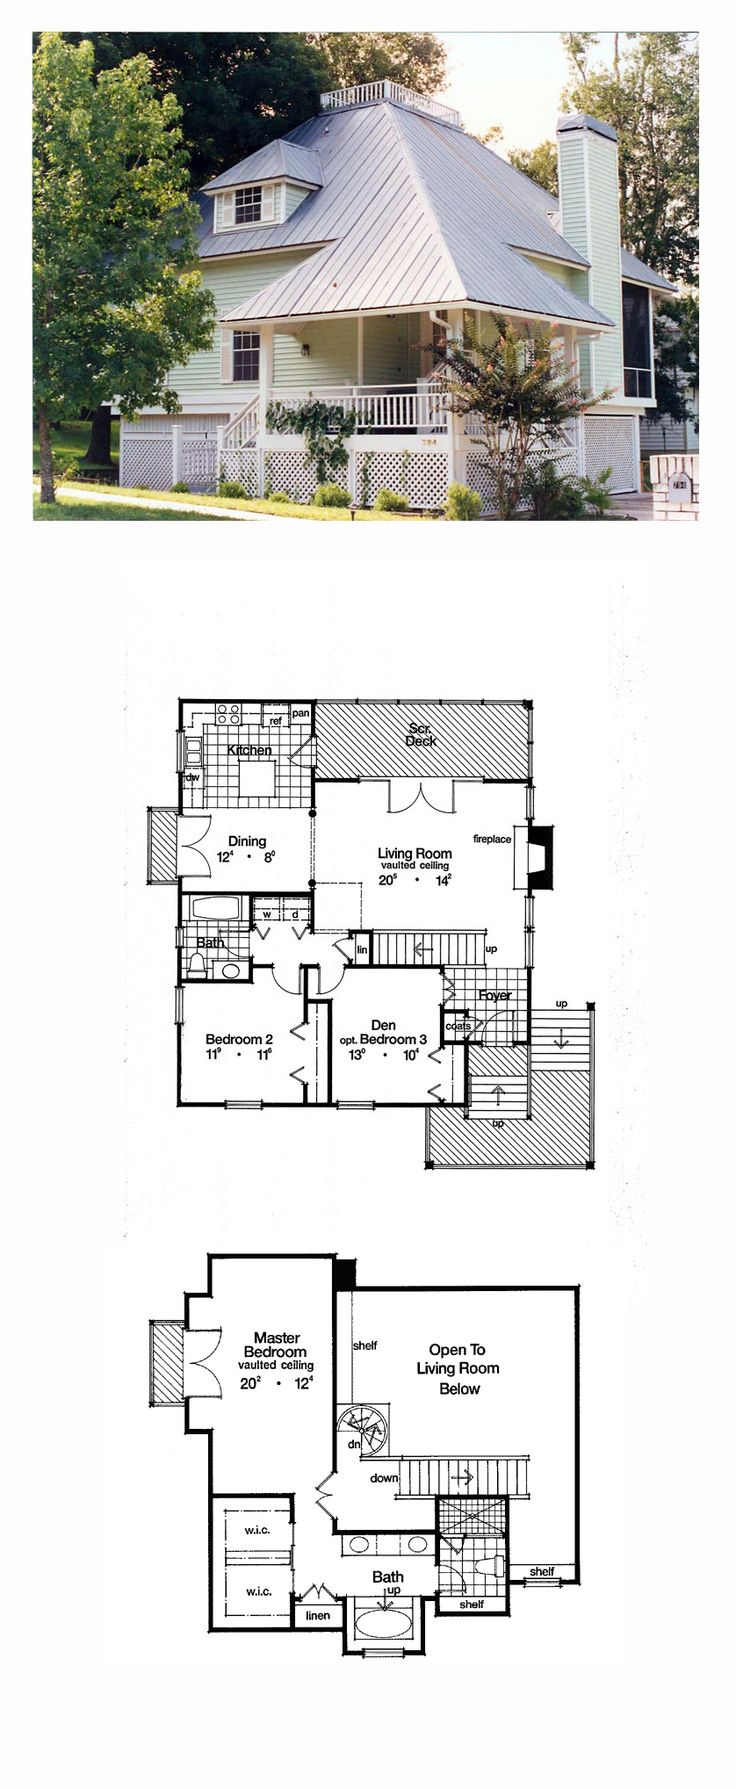 Amazing House Design Architecture: 16 Best Images About Florida Cracker House Plans On